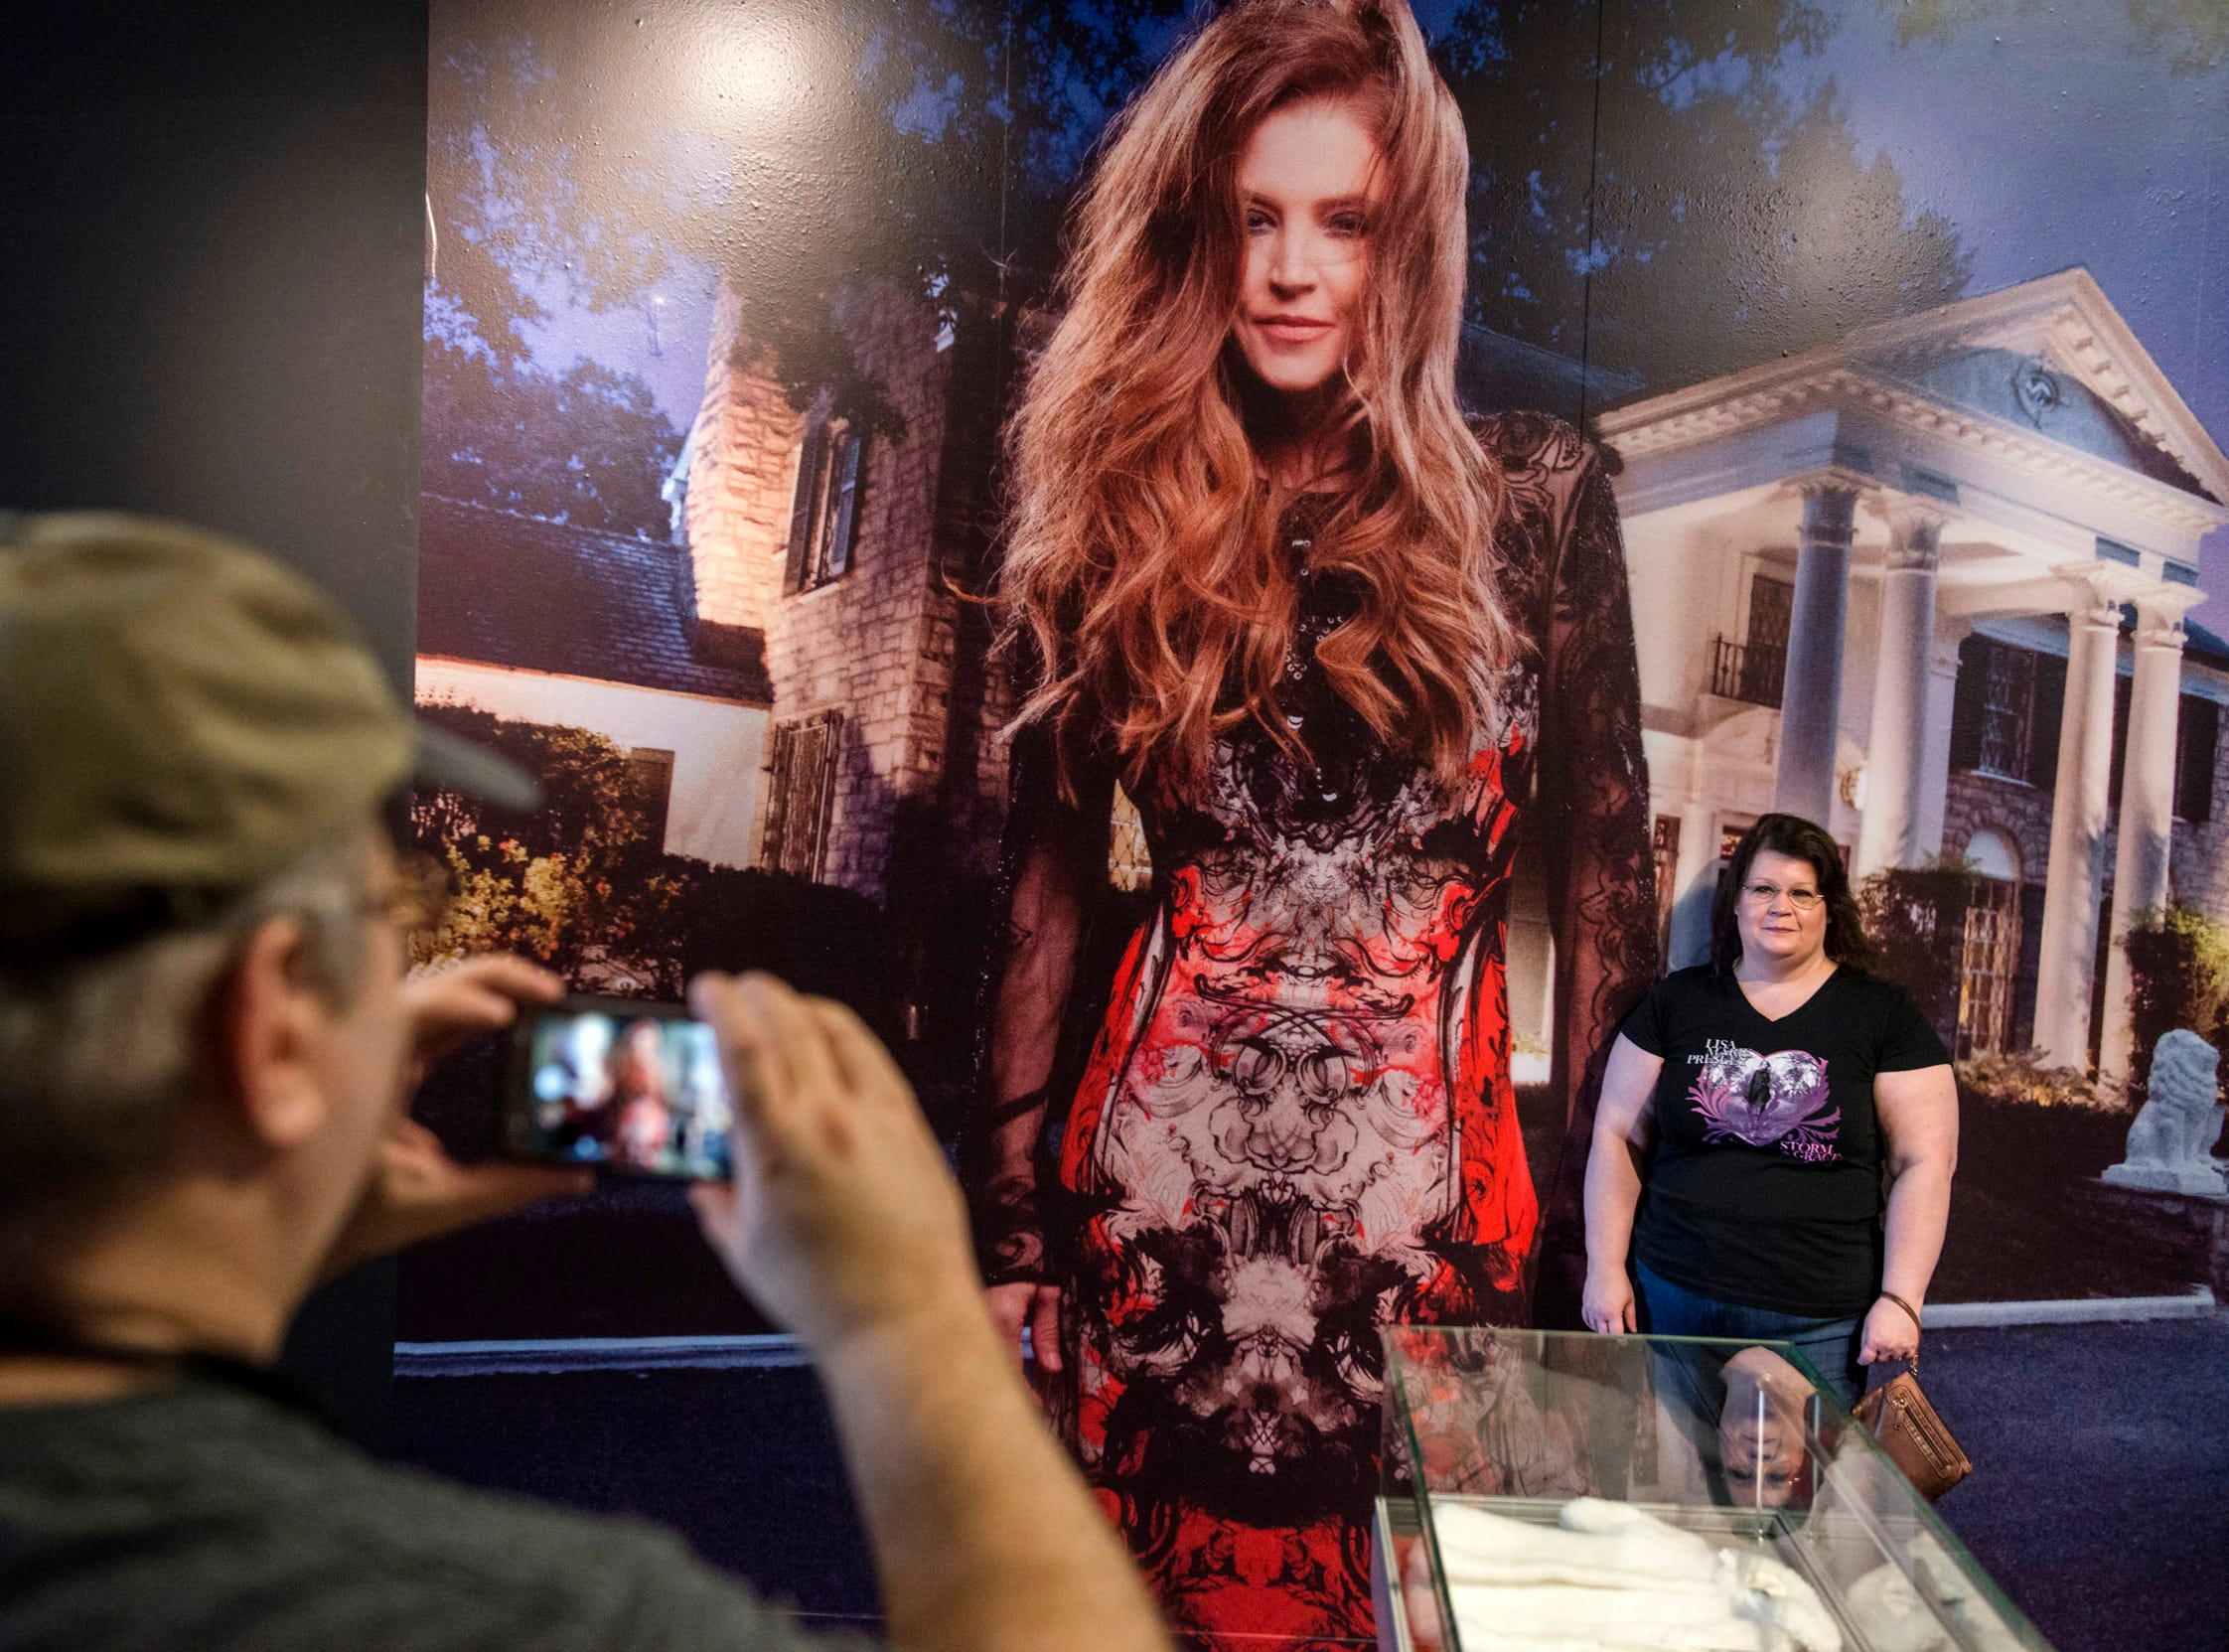 "August 10, 2018 - Columbus, Ohio resdient Billy Eanes takes a photo of Stacy Eanes during a private ribbon-cutting event for the new exhibit ""Lisa Marie: Growing Up Presley"" at Elvis Presley's Memphis entertainment complex."